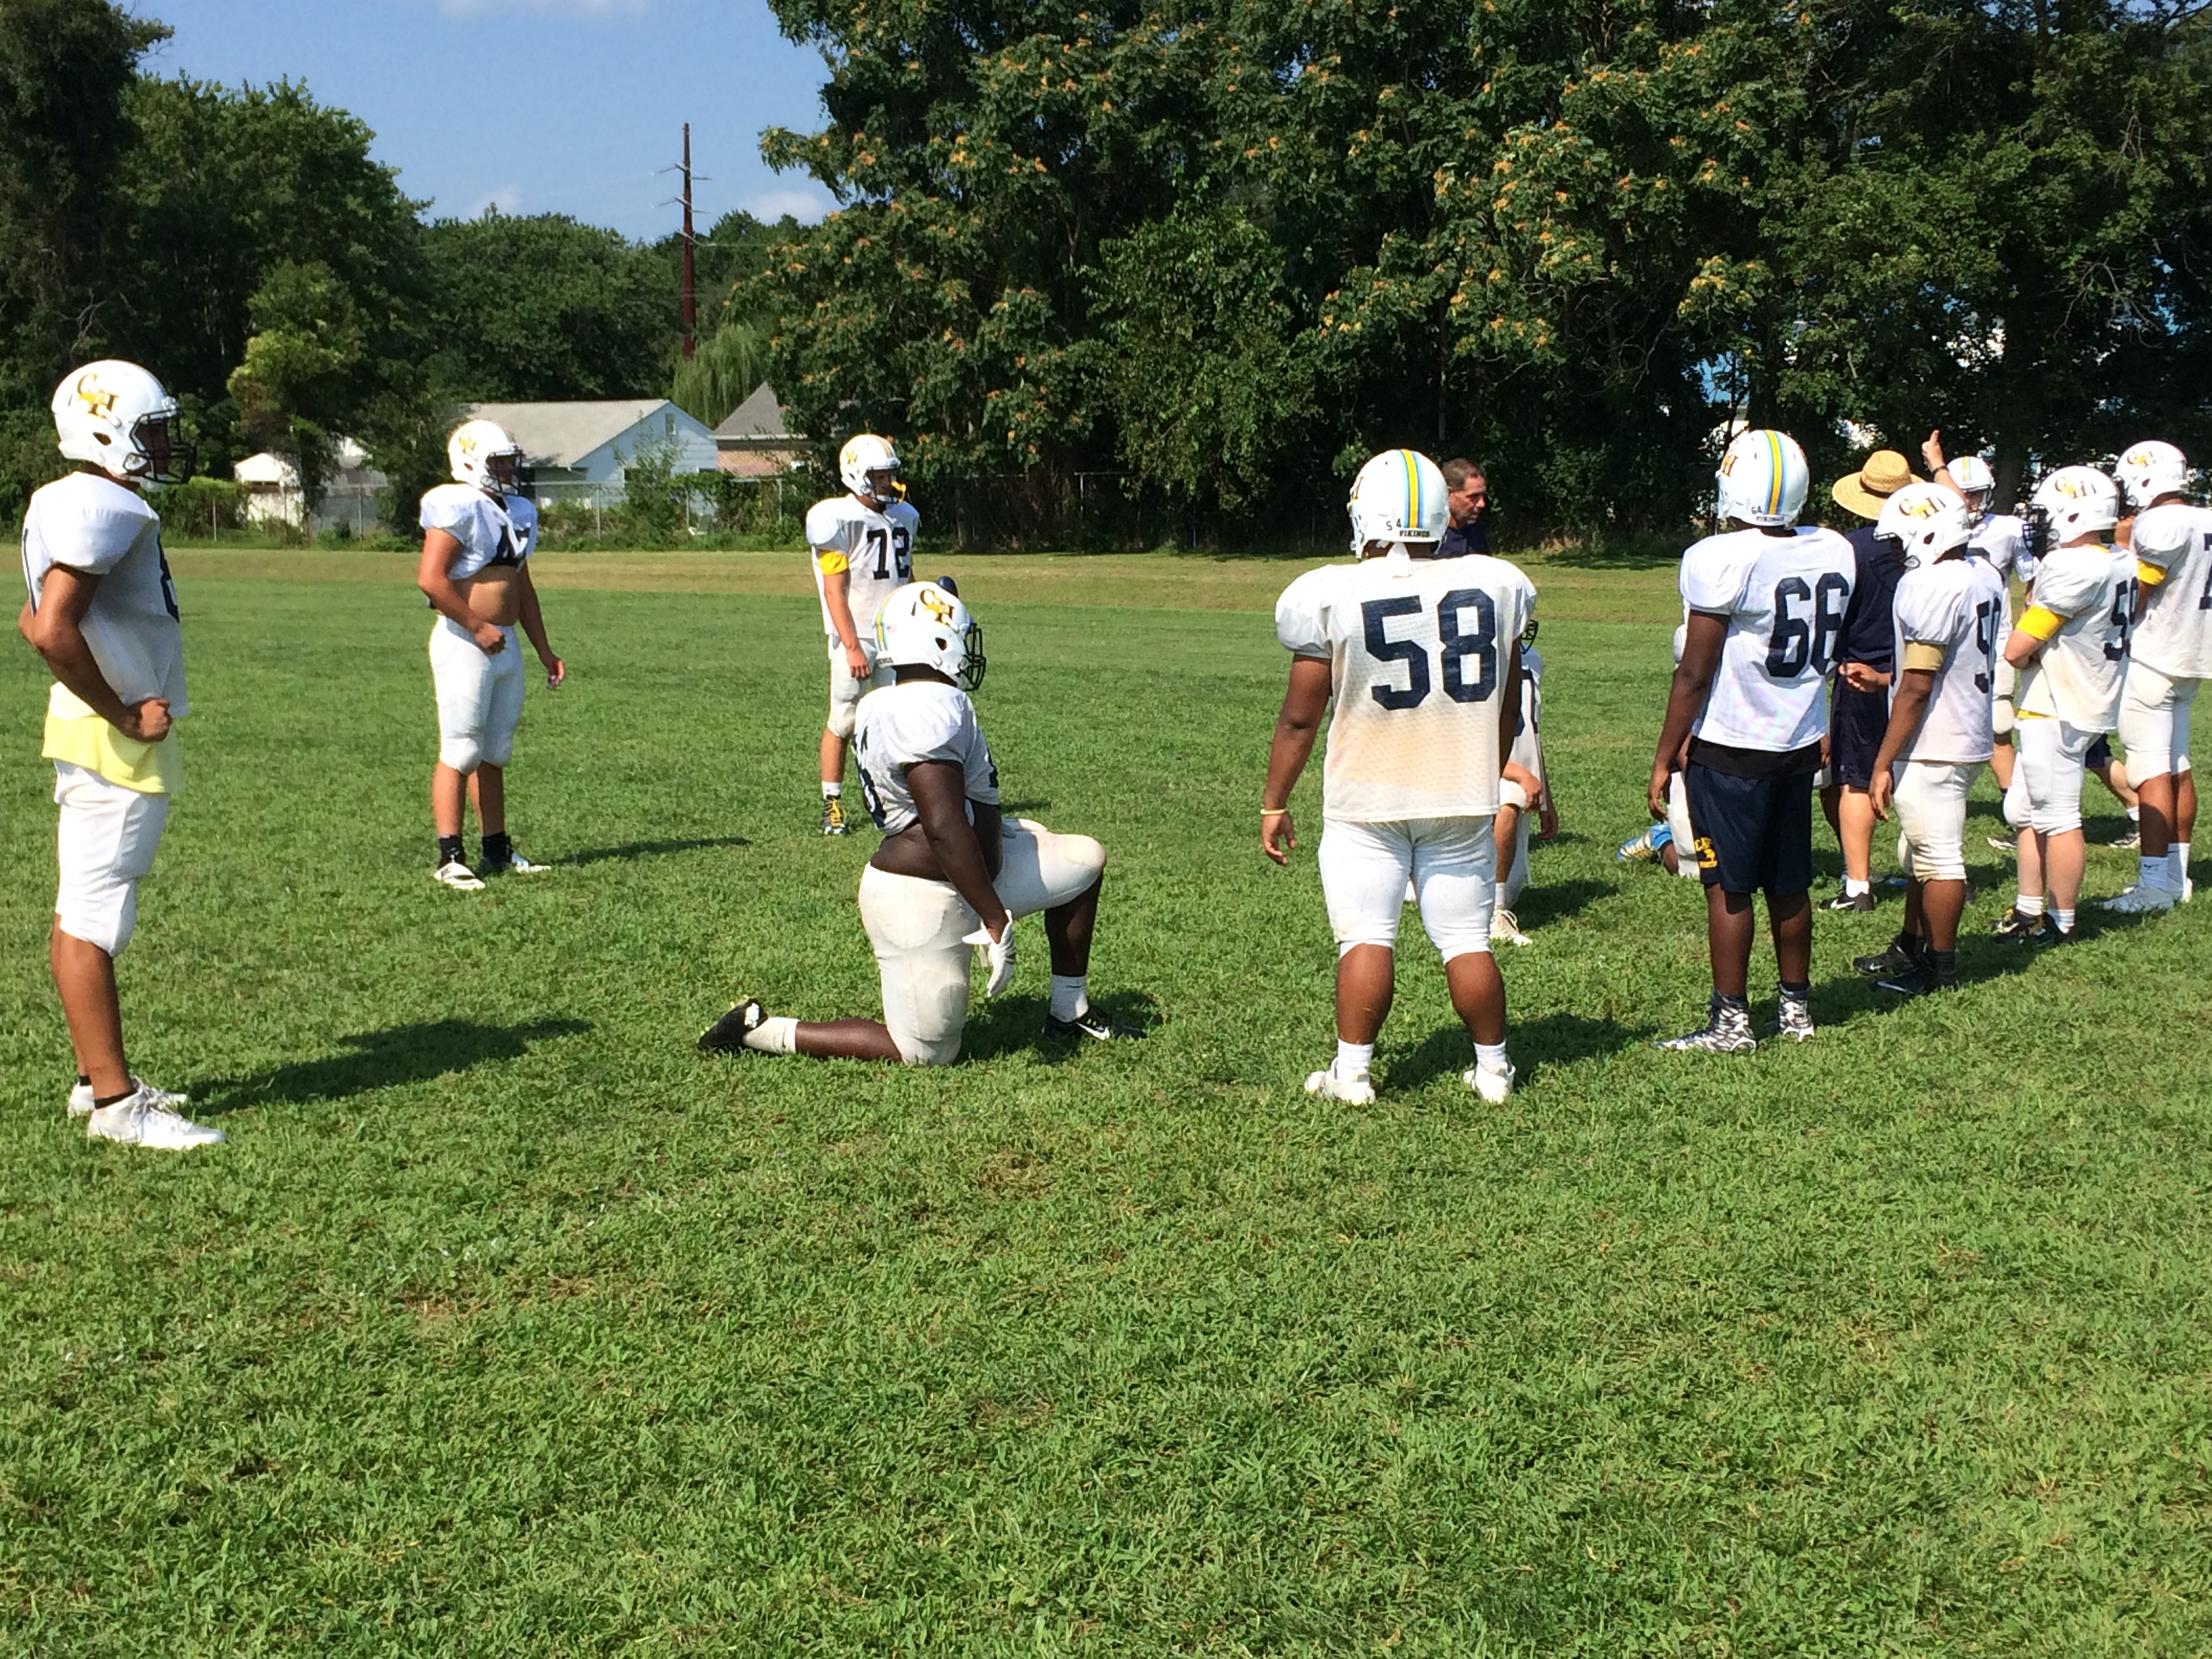 The Next Step For Cape – A Playoff Season